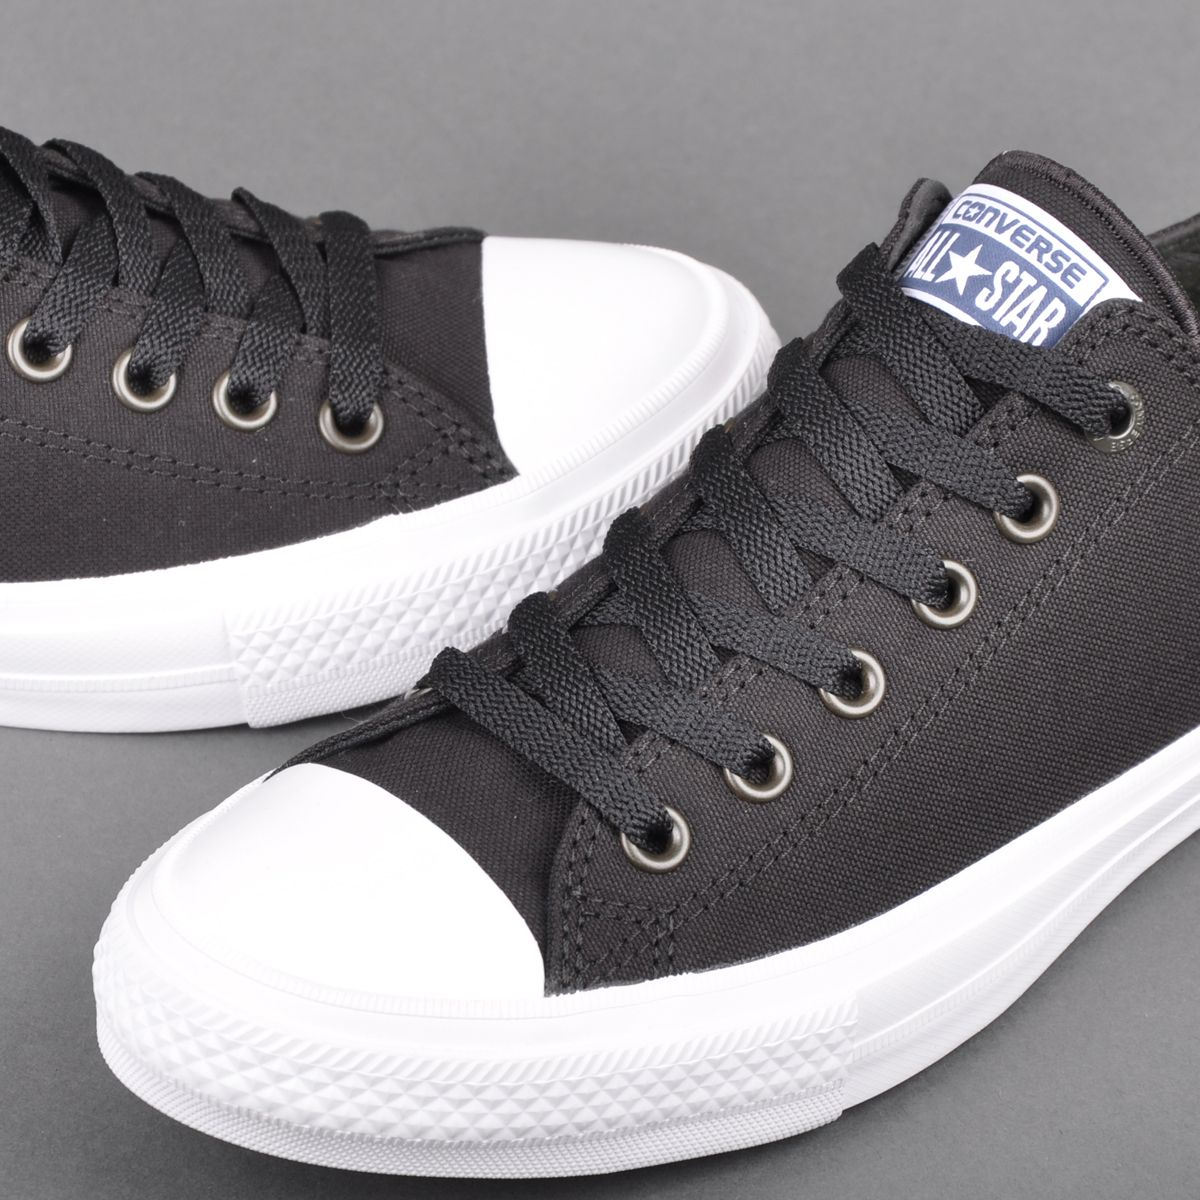 Converse CT II Ox, black / white | Beyond